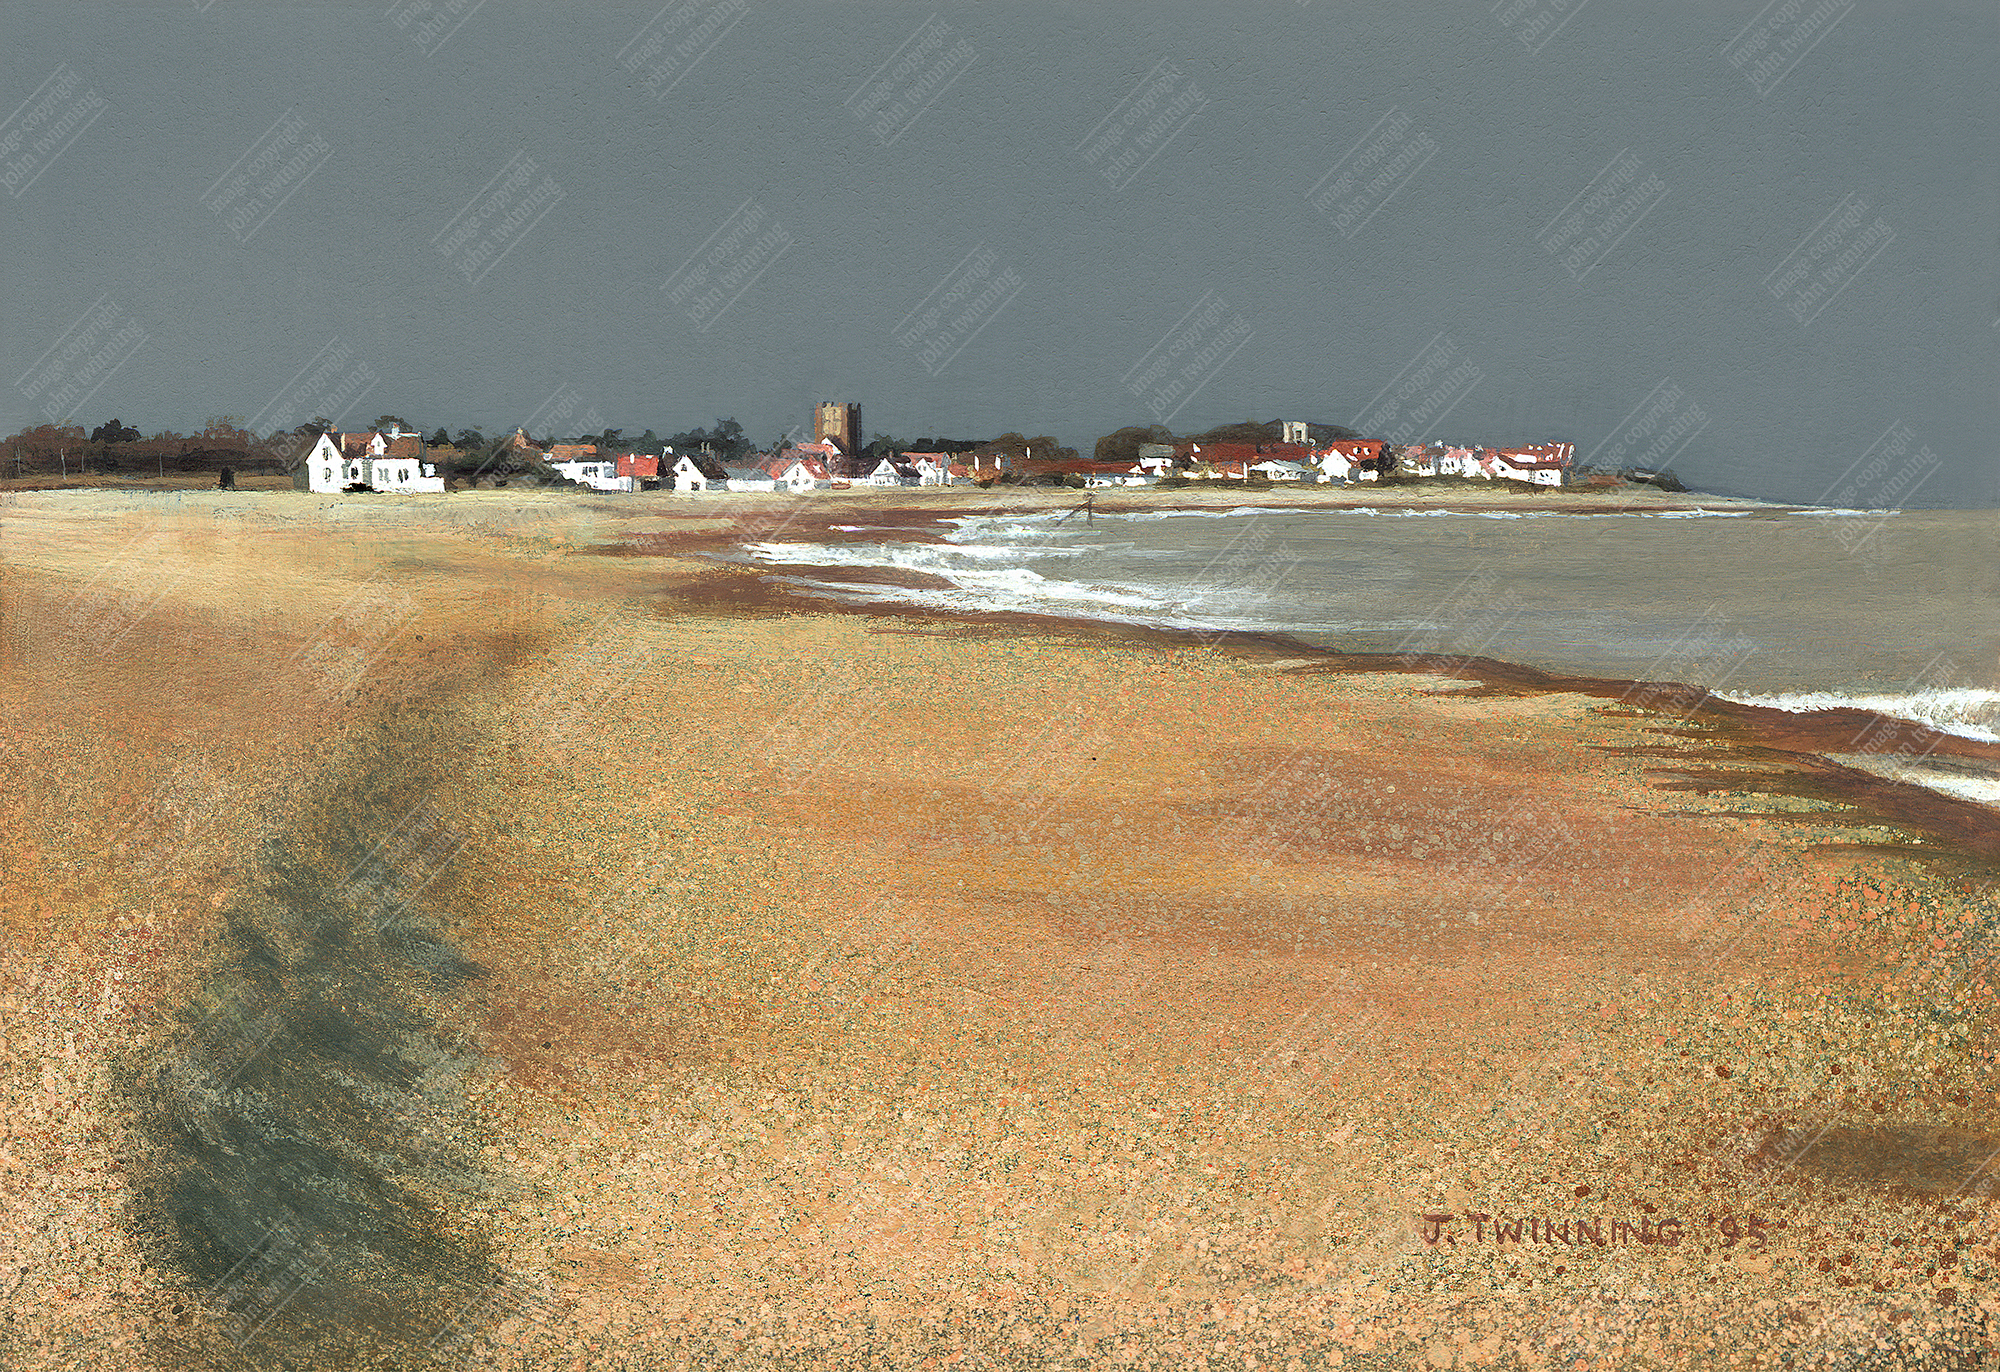 Towards Thorpeness, passing storm